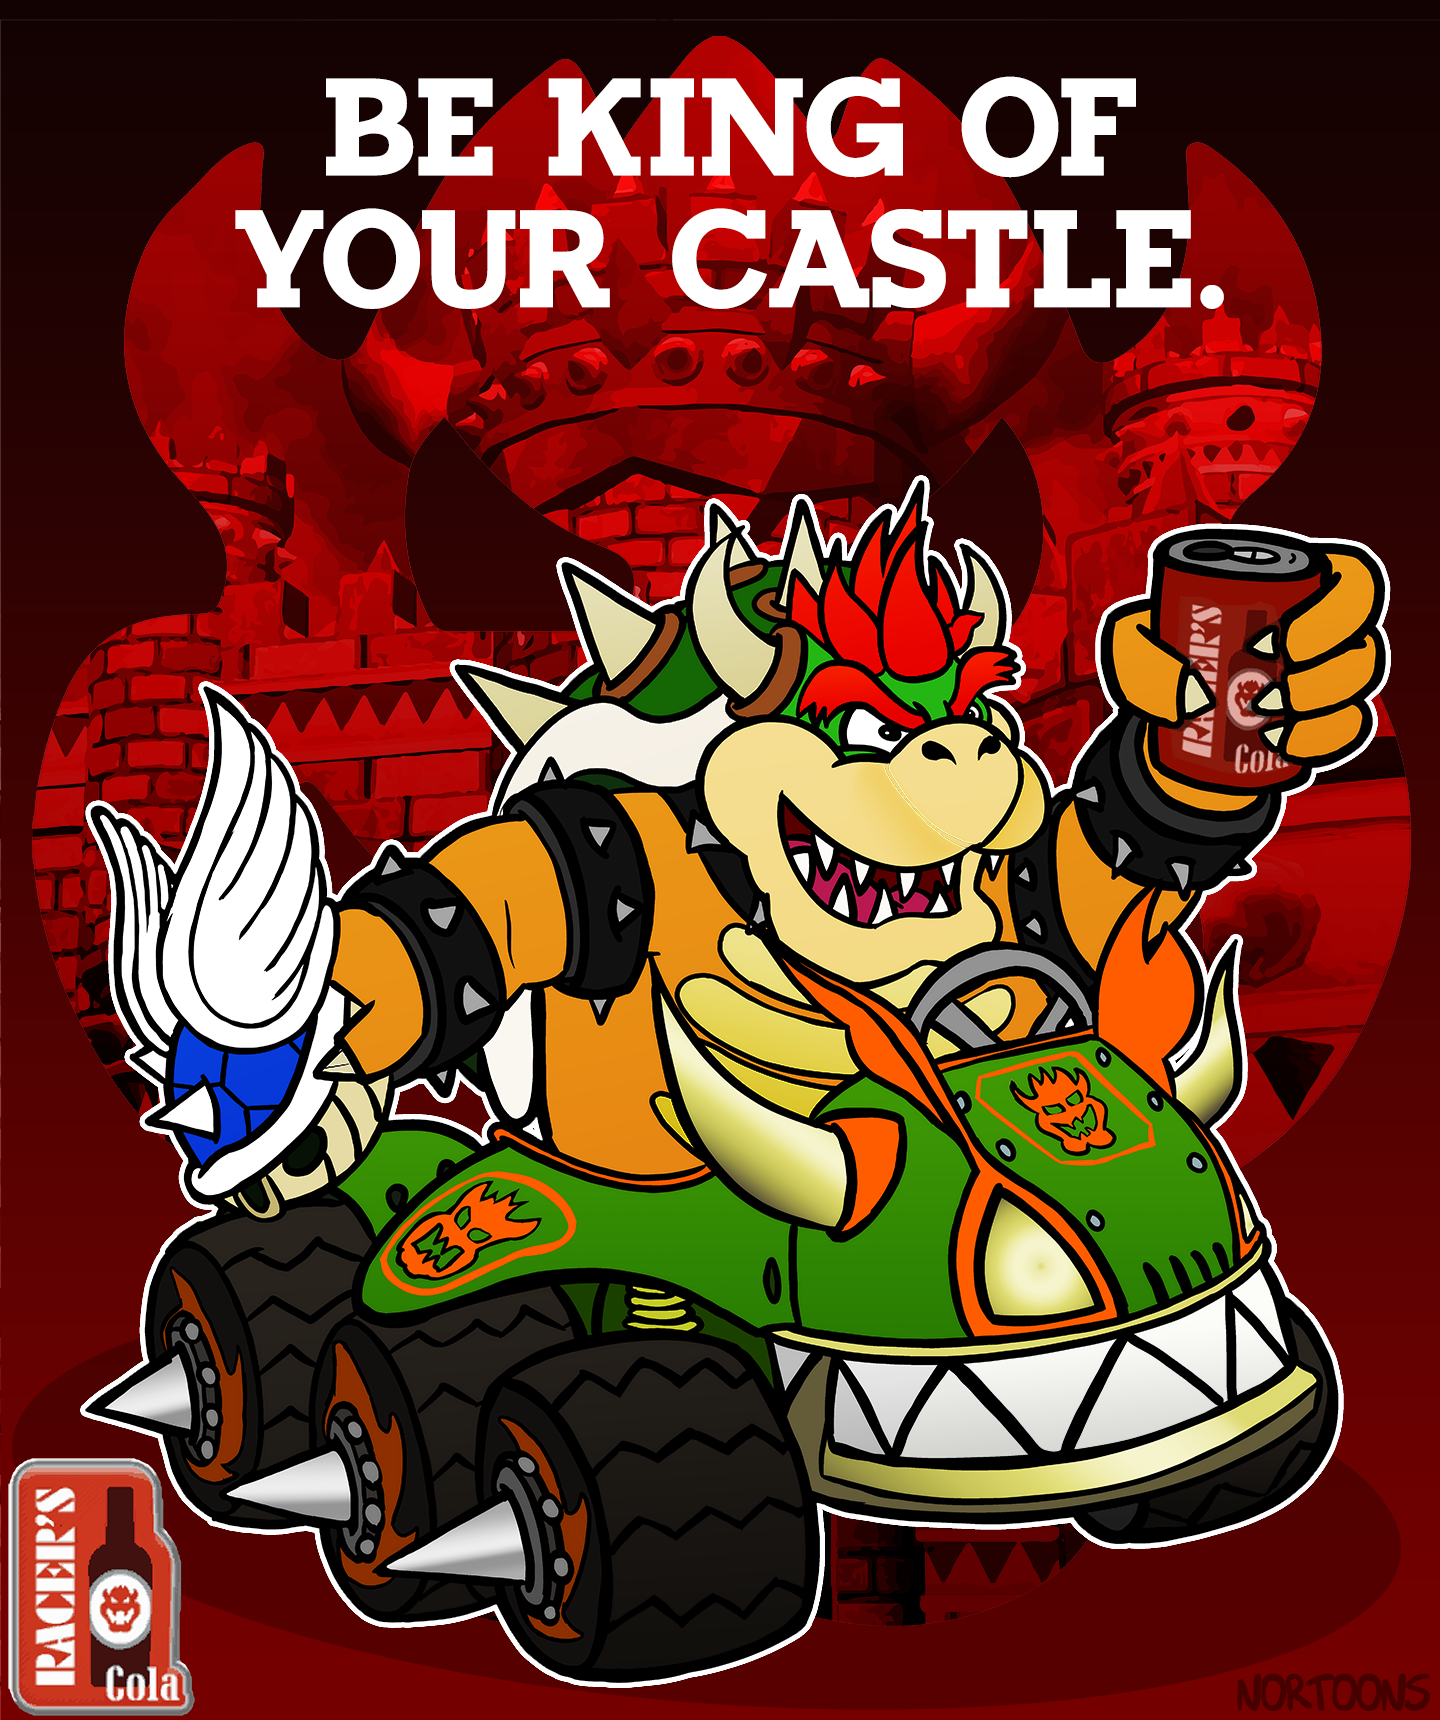 Racer's Cola featuring King Bowser